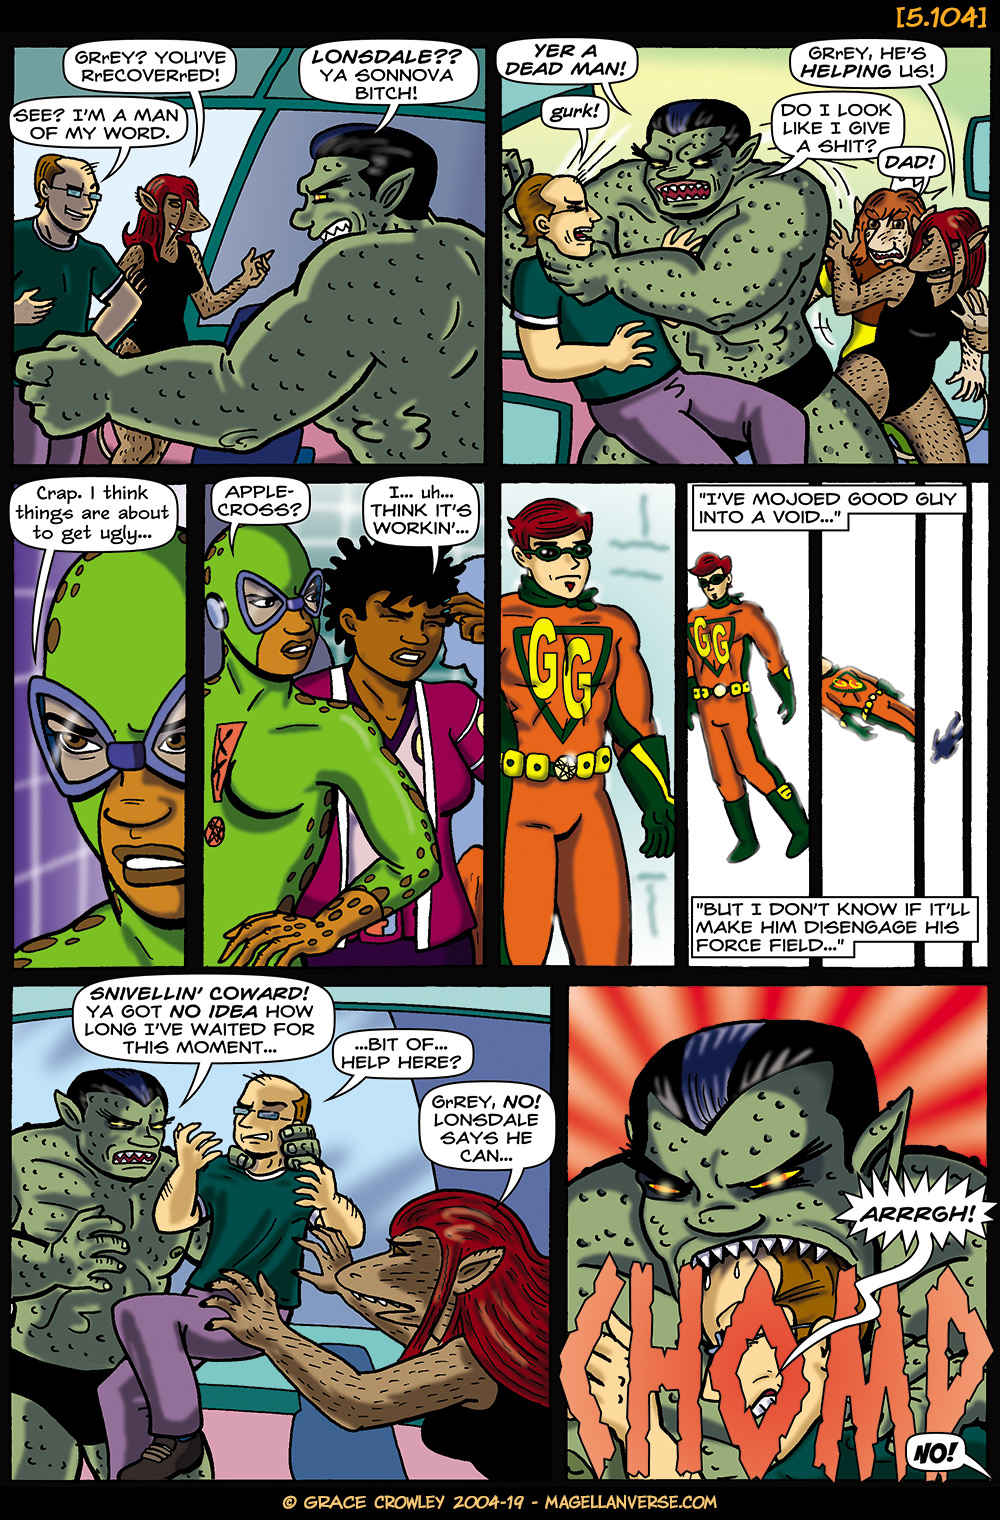 Page 5.104